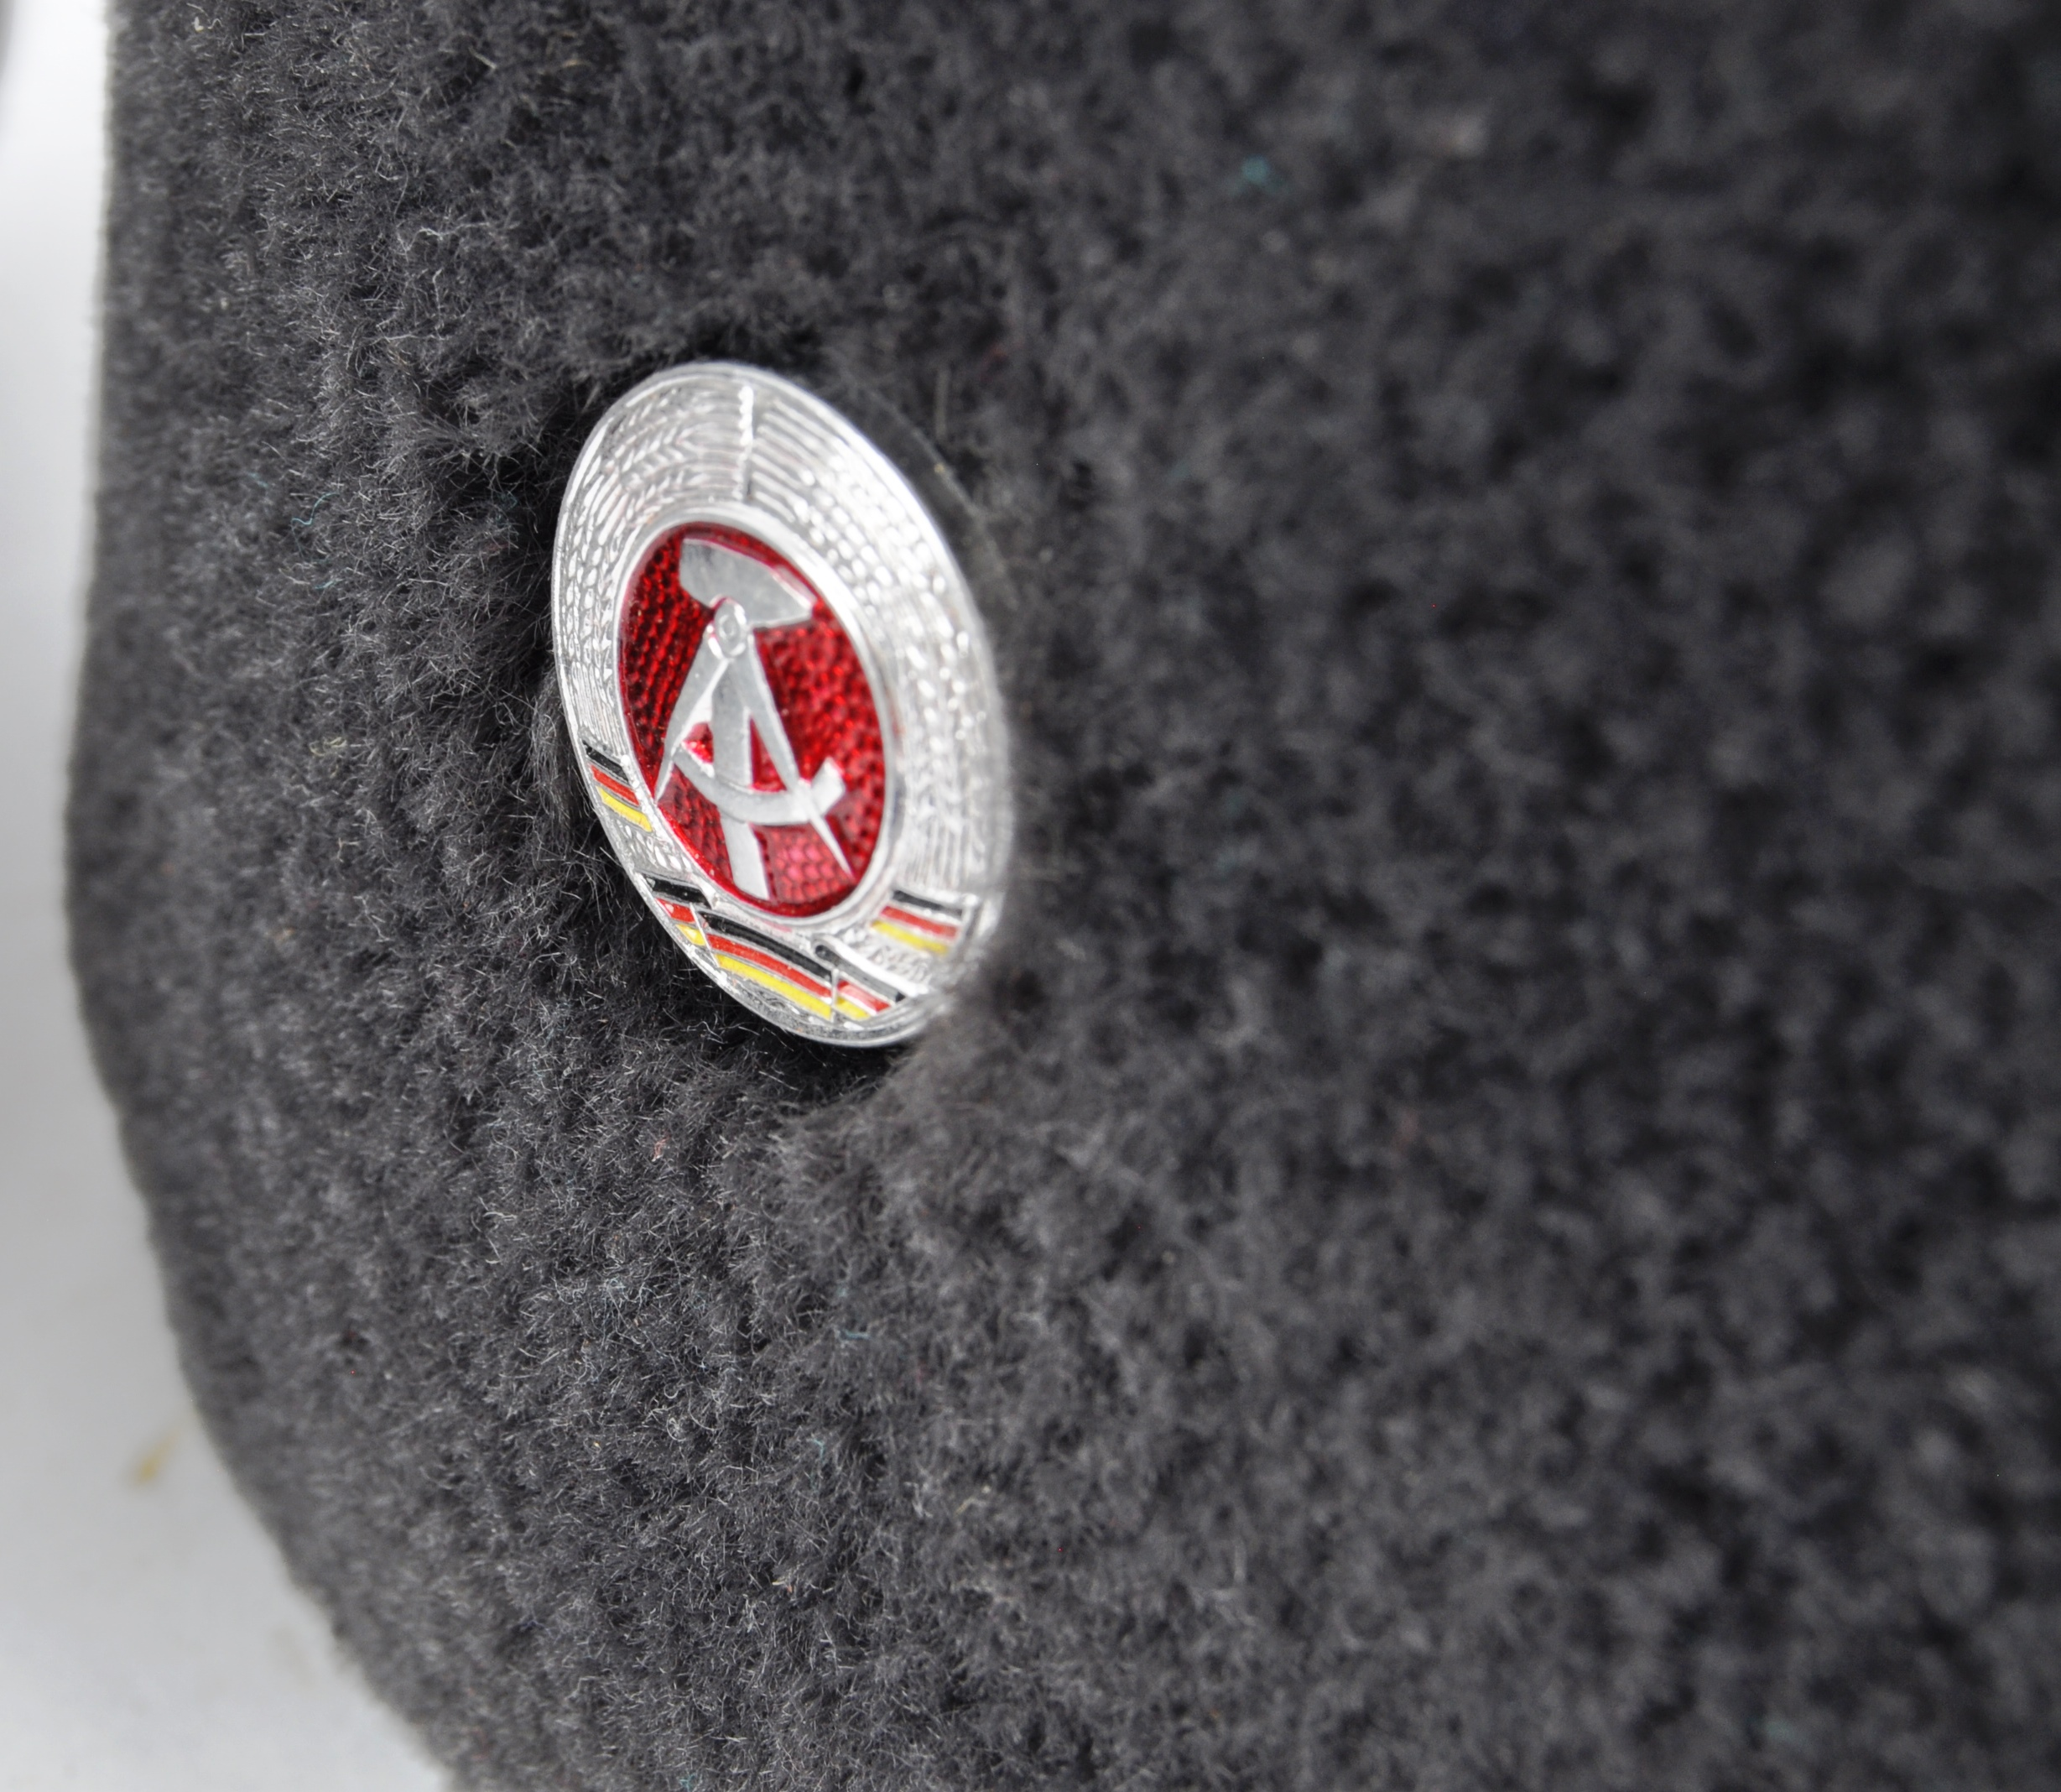 COLLECTION ASSORTED EAST GERMAN NATIONAL PEOPLE'S ARMY HATS - Image 3 of 11